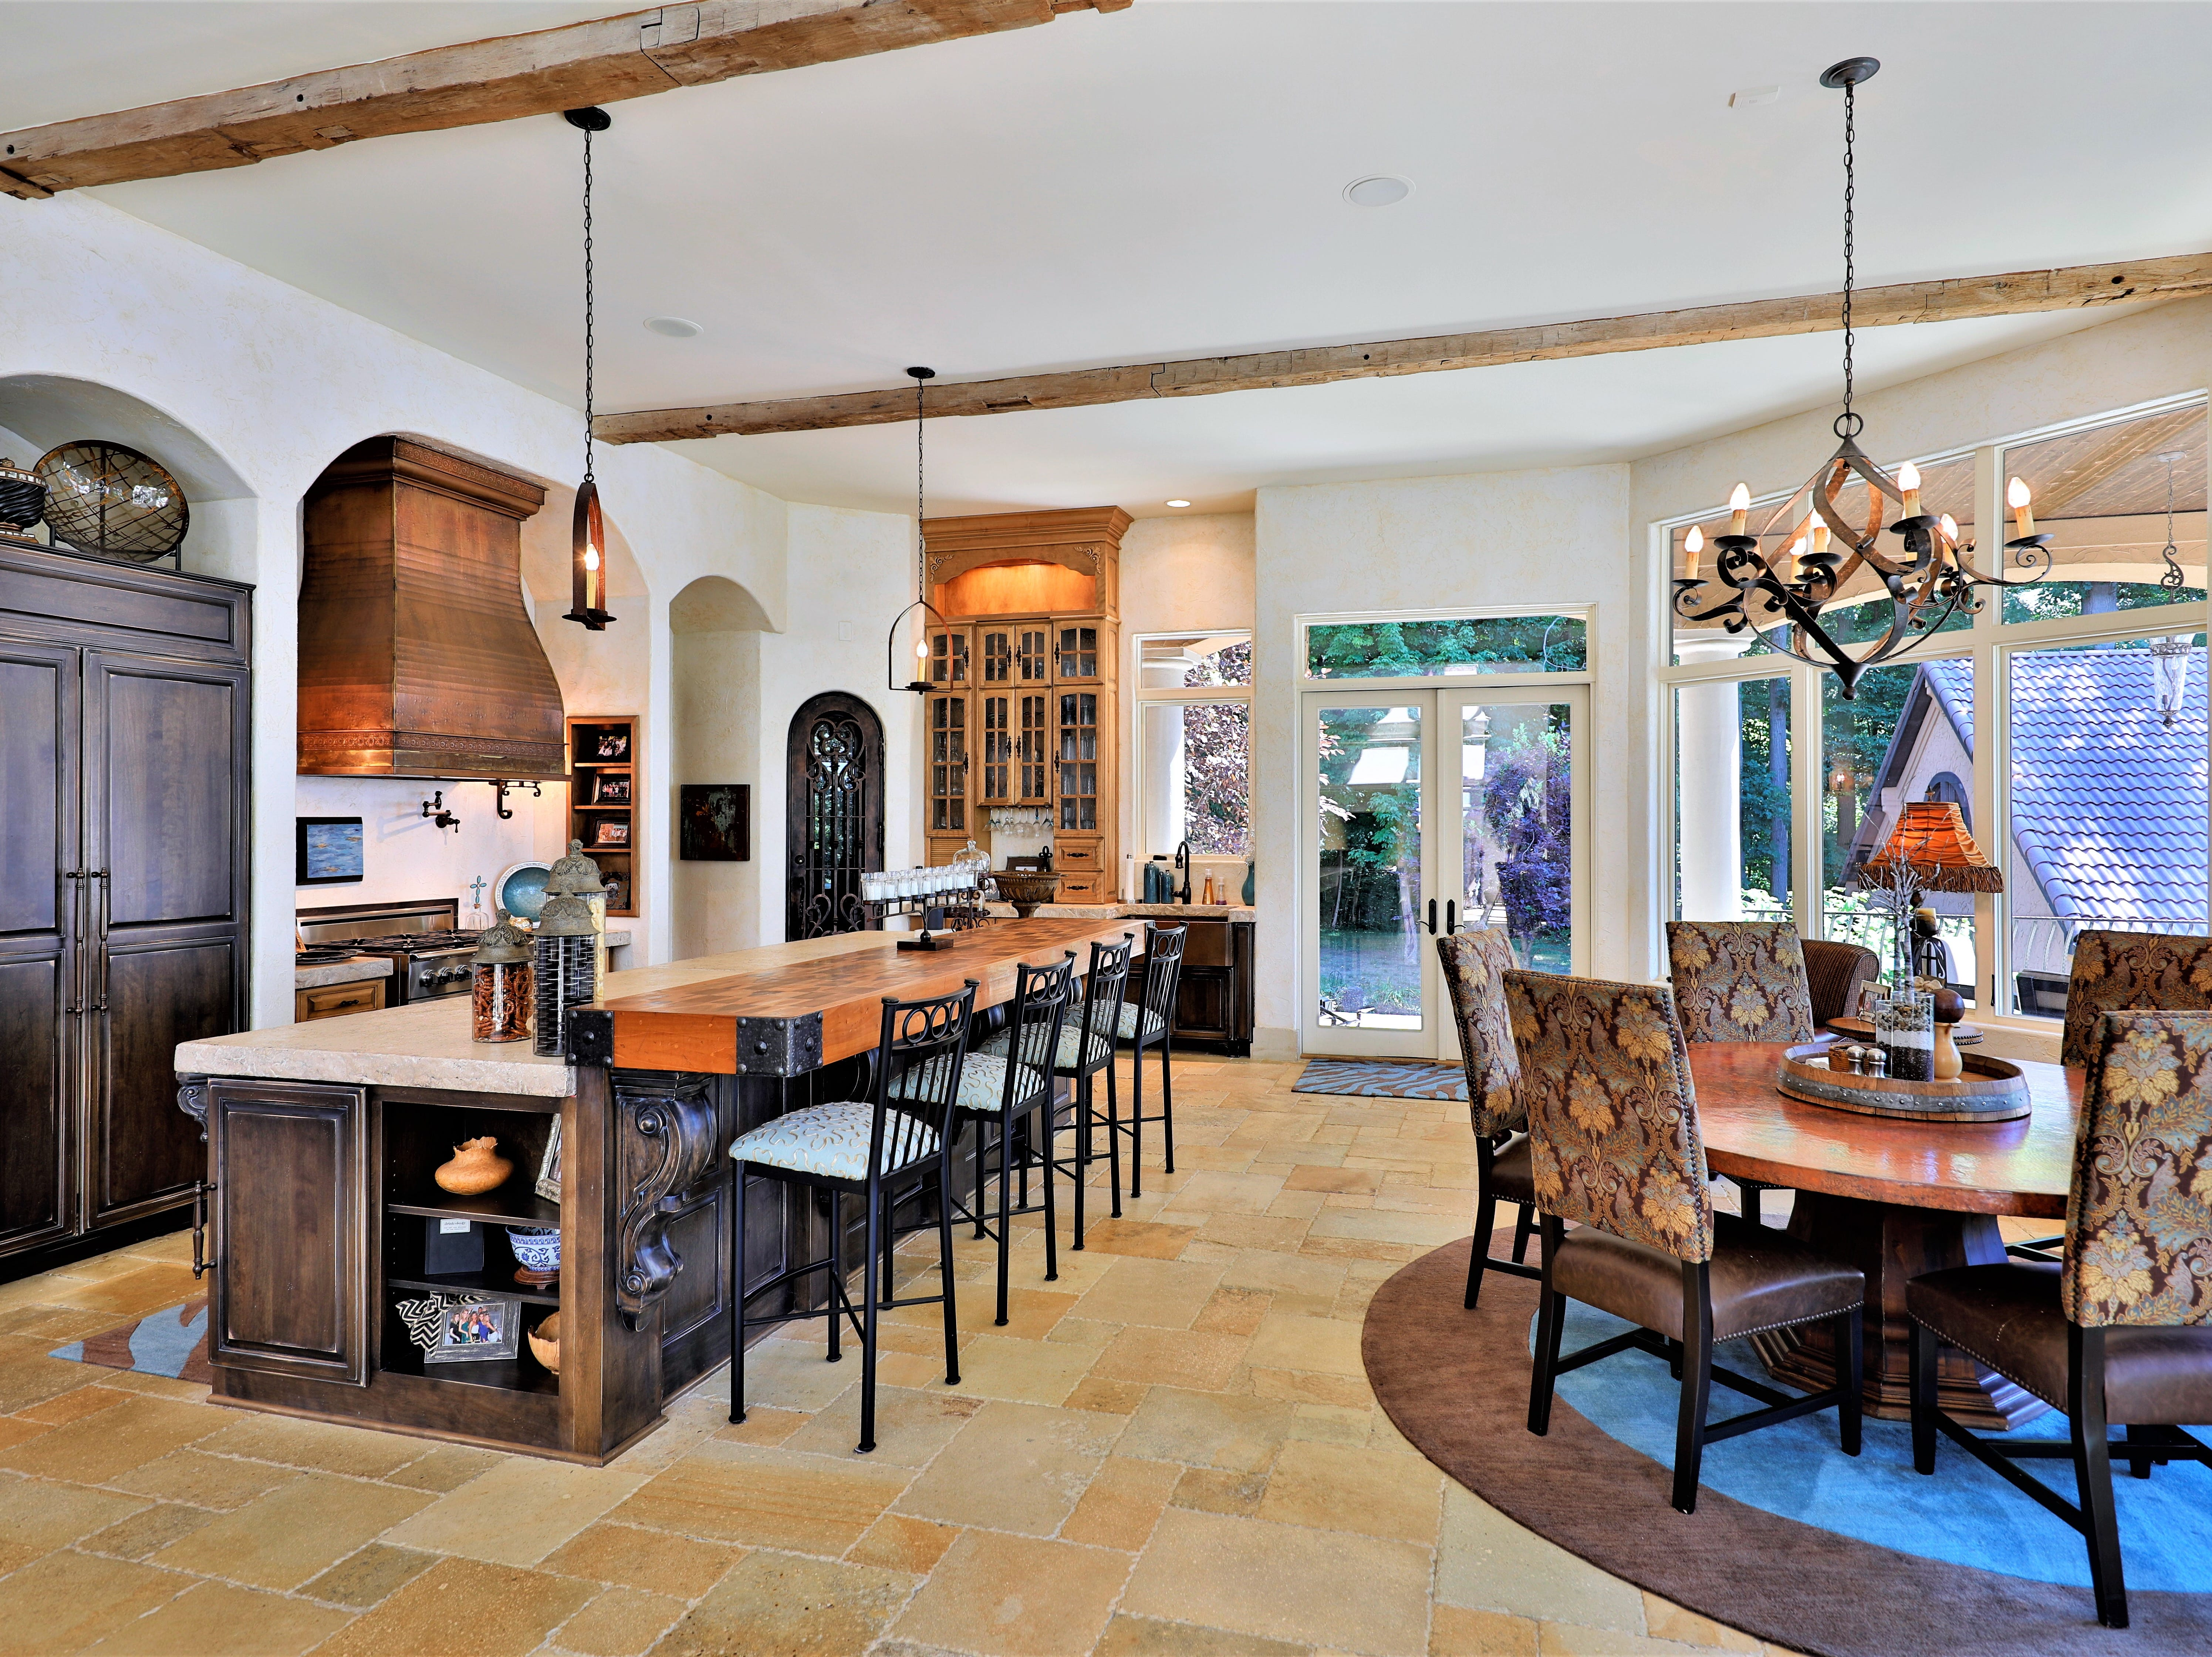 """The home's open-concept main kitchen includes a large island with a concrete counter top and breakfast nook. Through the arched door is a pantry and second """"preparatory"""" kitchen with laundry."""